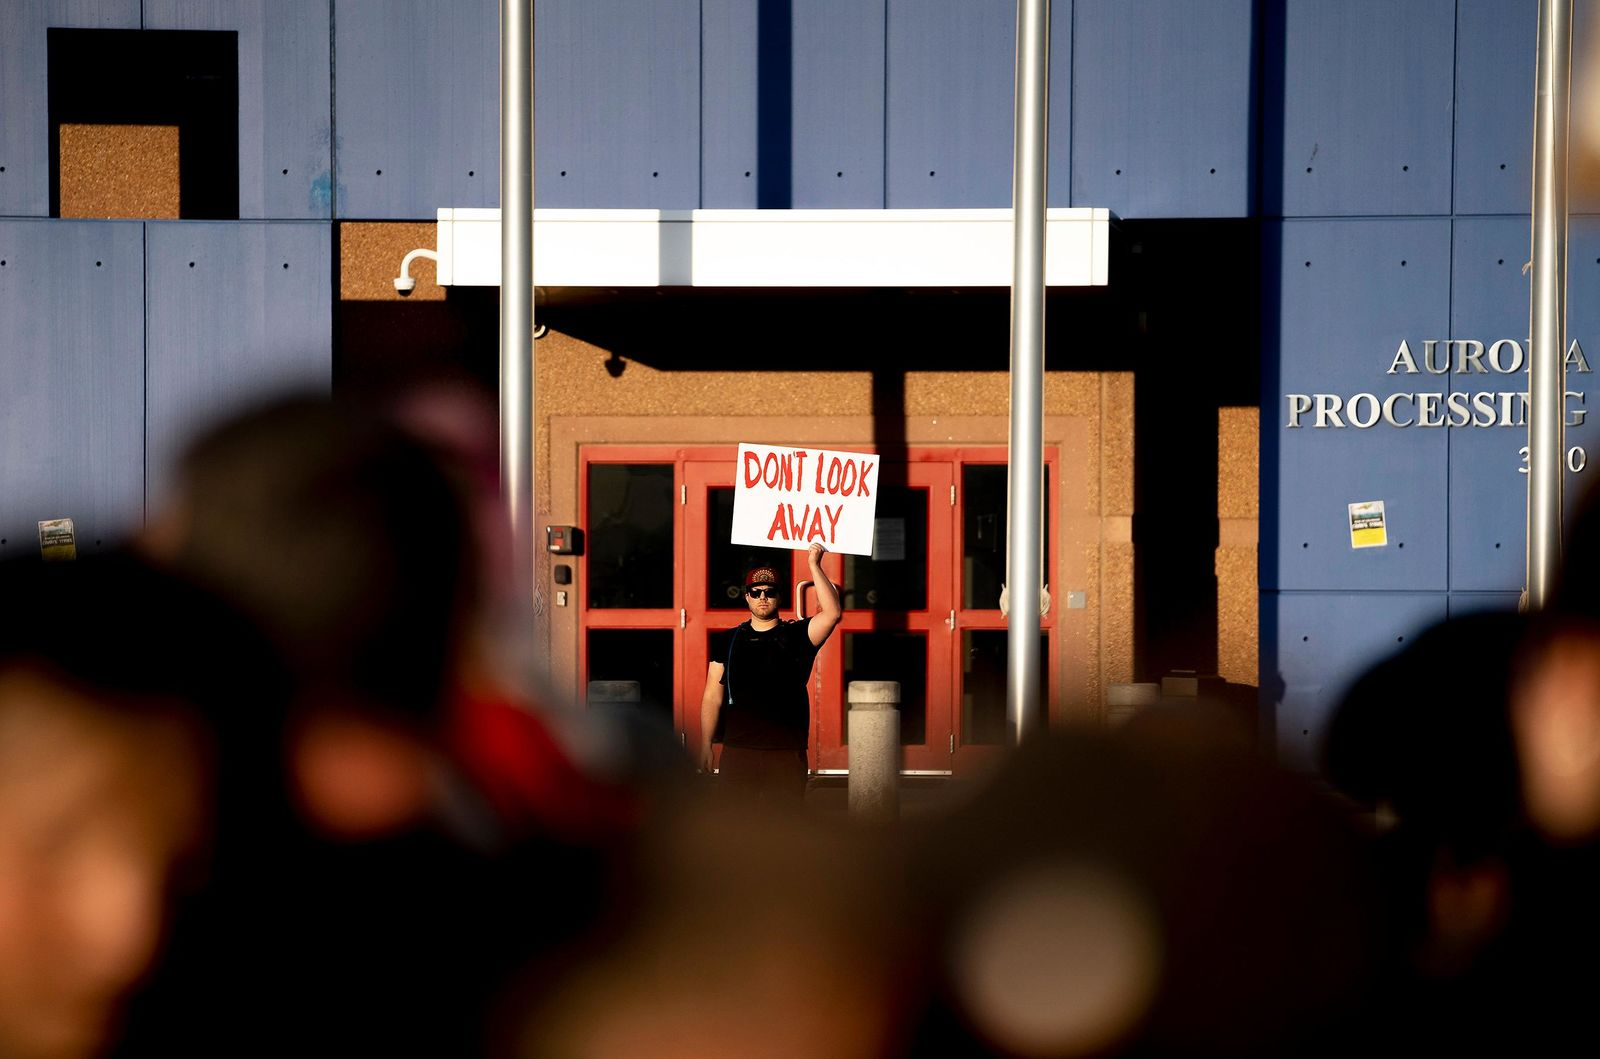 In this Friday, July 12, 2019, photo, a sole protester stands beyond the threshold and on GEO property while hundreds of protesters assembled for a march at the GEO facility, in Aurora, Colo. Police say they will be reviewing any available video to help them identity protesters who trespassed and pulled down the American flag in front of an immigration detention center in suburban Denver, tried to burn it and replaced it with a Mexican flag. (Philip B. Poston/The Aurora Sentinel via AP)